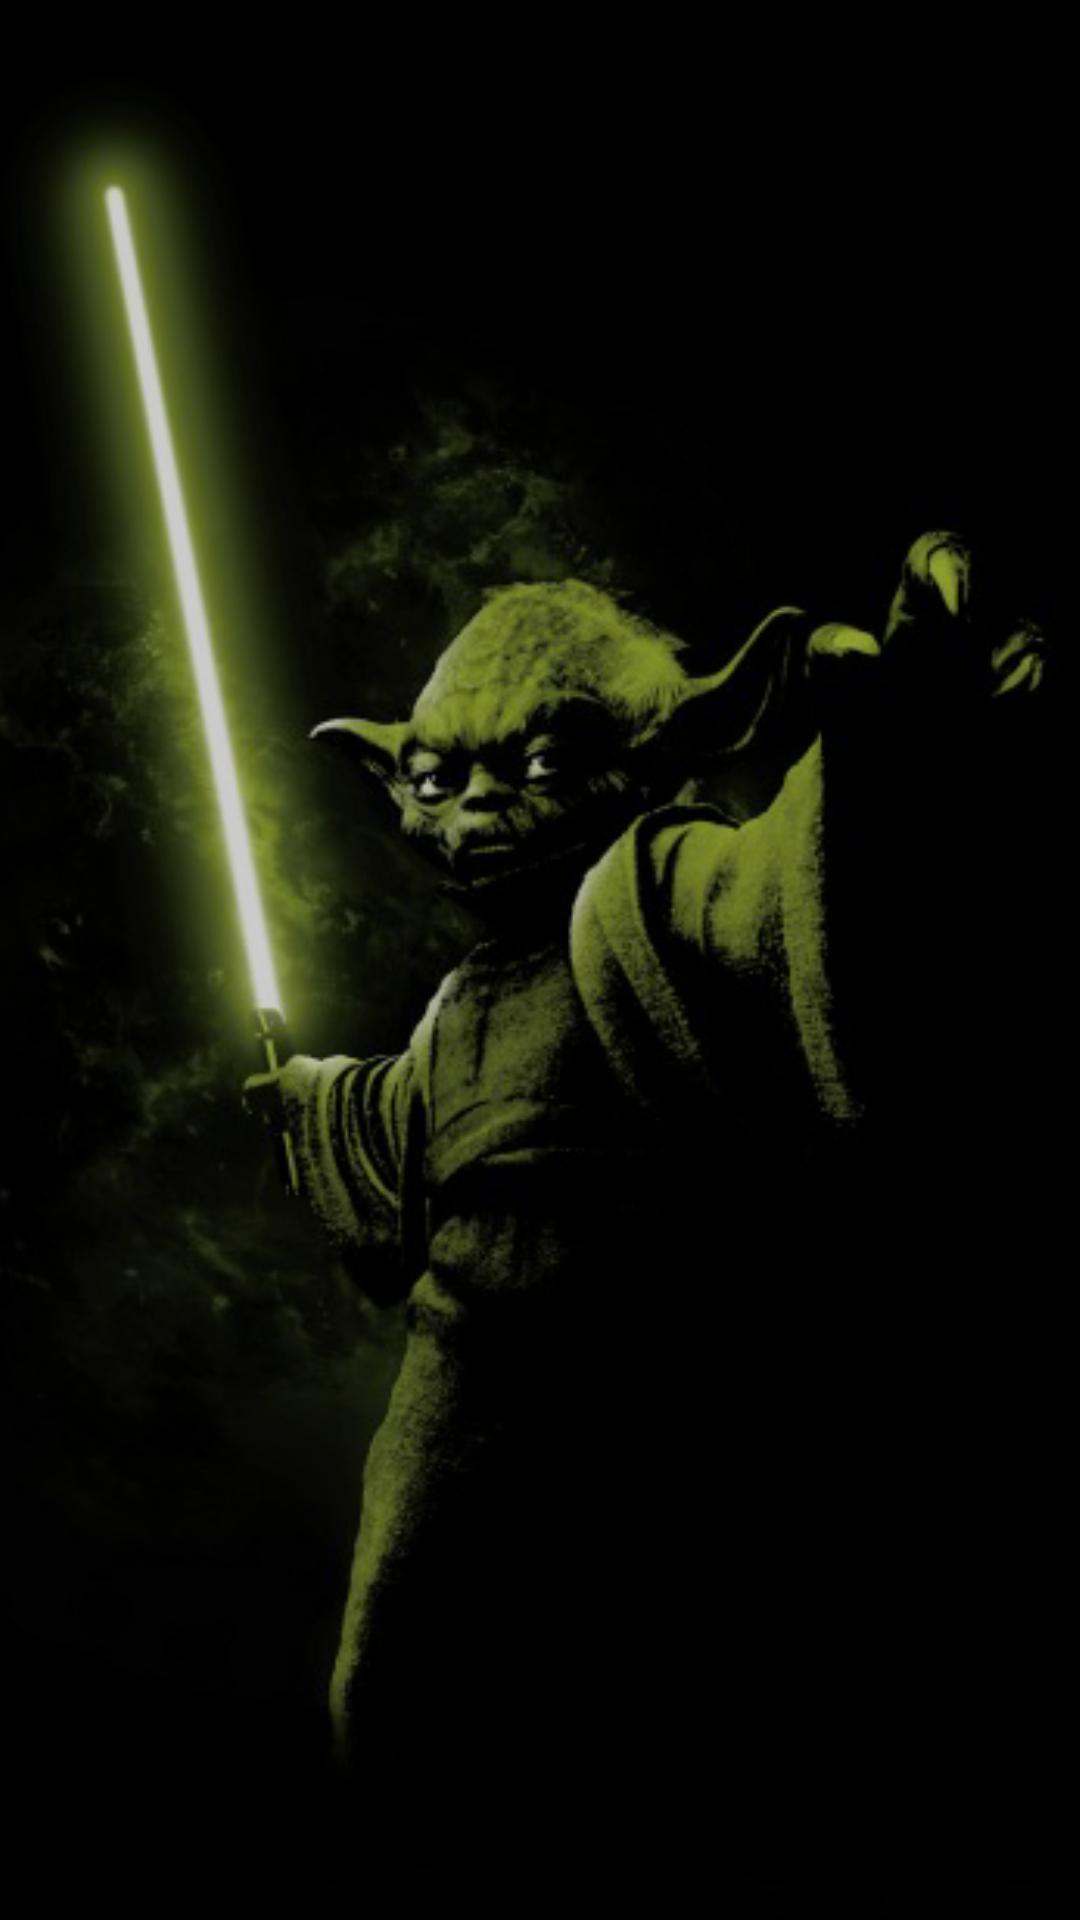 Yoda Star Wars Wallpapers Images » Hupages » Download